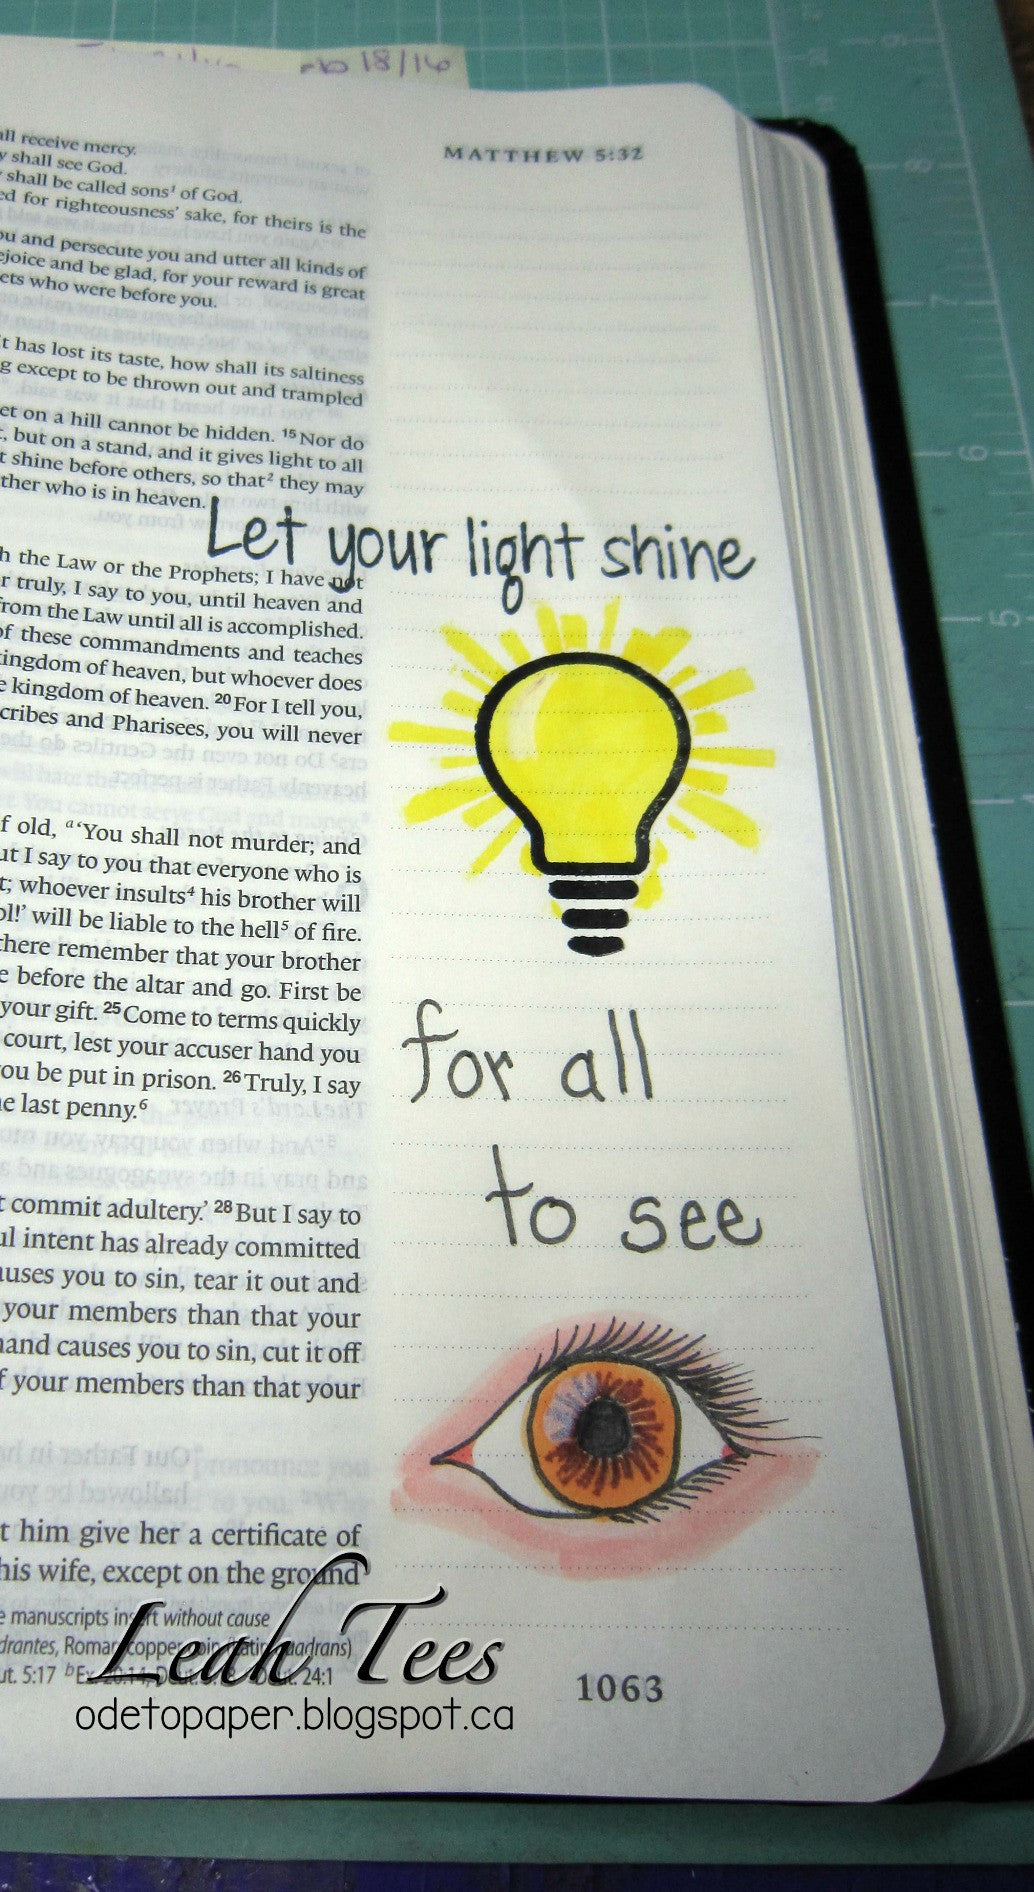 Clear Stamps - Let the Light Shine | Bible Journaling Clear Stamps - Joy Clair - 11